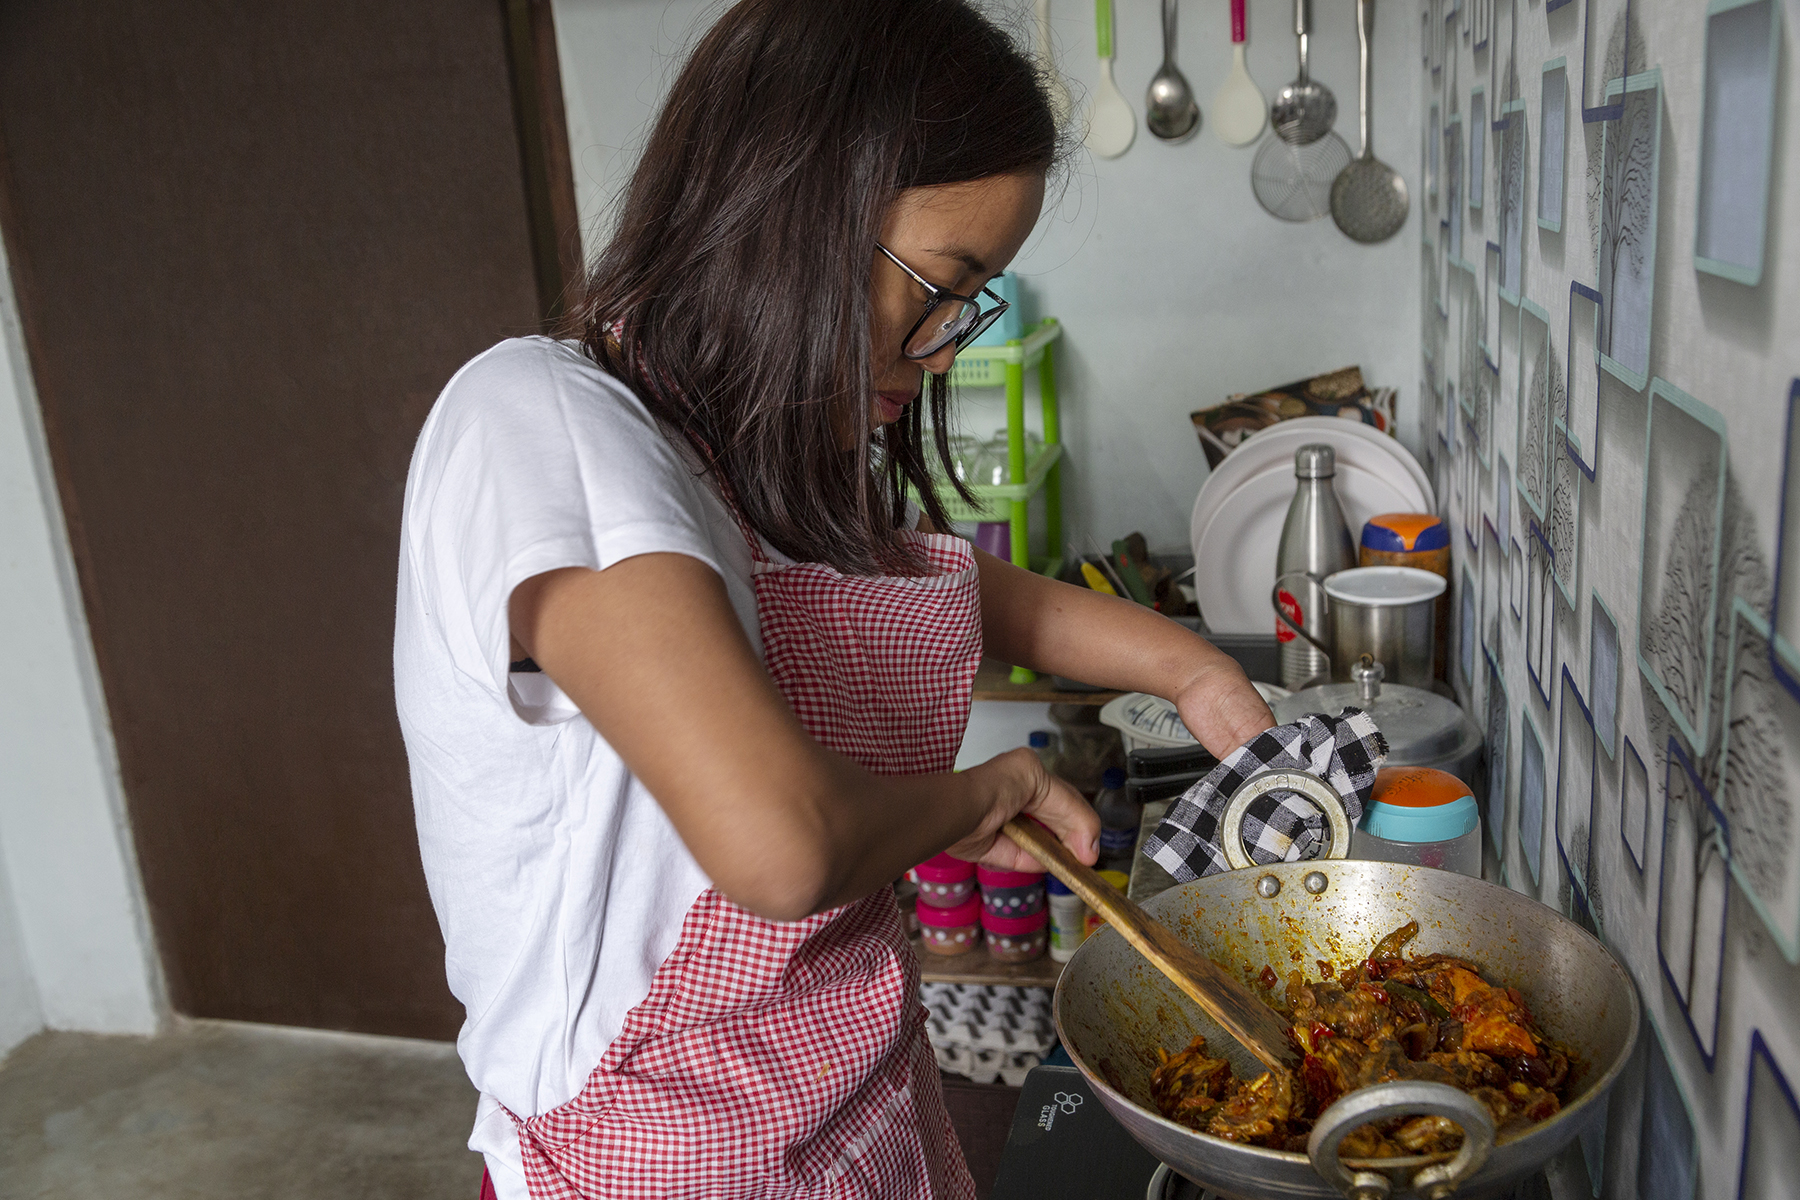 A side shot of Ashe cooking in her kitchen. She wears an apron of tiny red-and-white checks over a white T-shirt. She is stirring meat in an aluminium kadai on the stove with a wooden spatula. With a black-and-white chequered cloth in her left hand she supports the handle and side of the hot kadai.